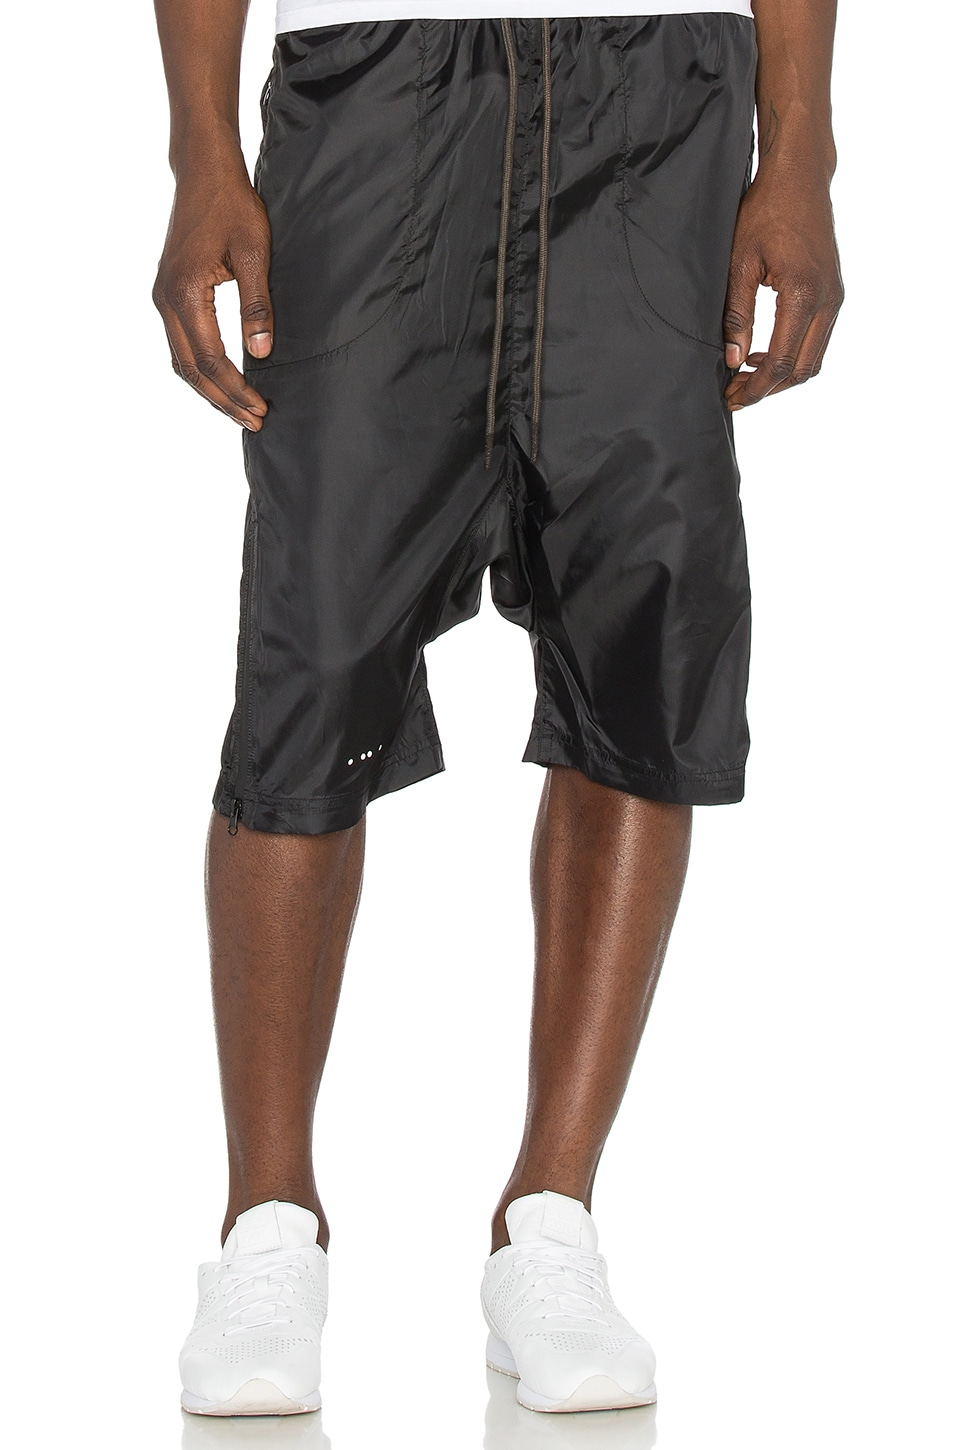 Publish Mono Crino Shorts in Black